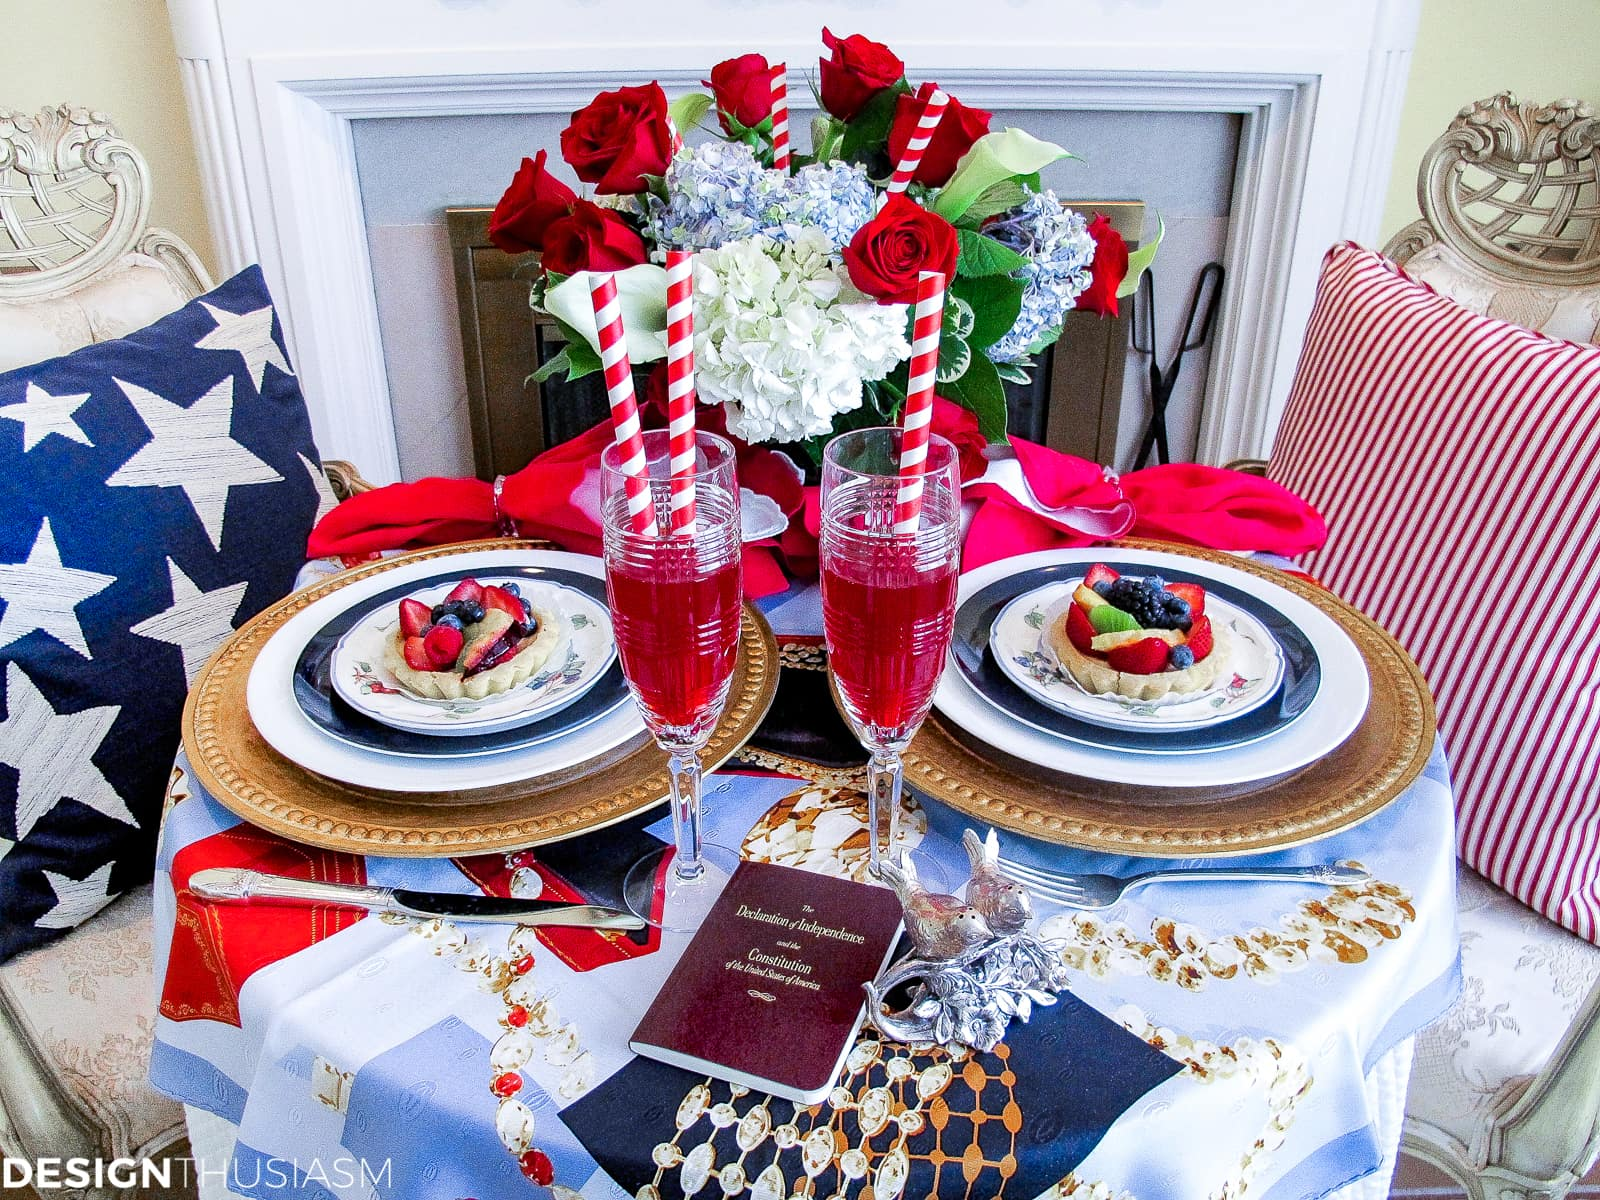 Patriotic Decorations | Elegant Fourth of July Table Decor Ideas - designthusiasm.com